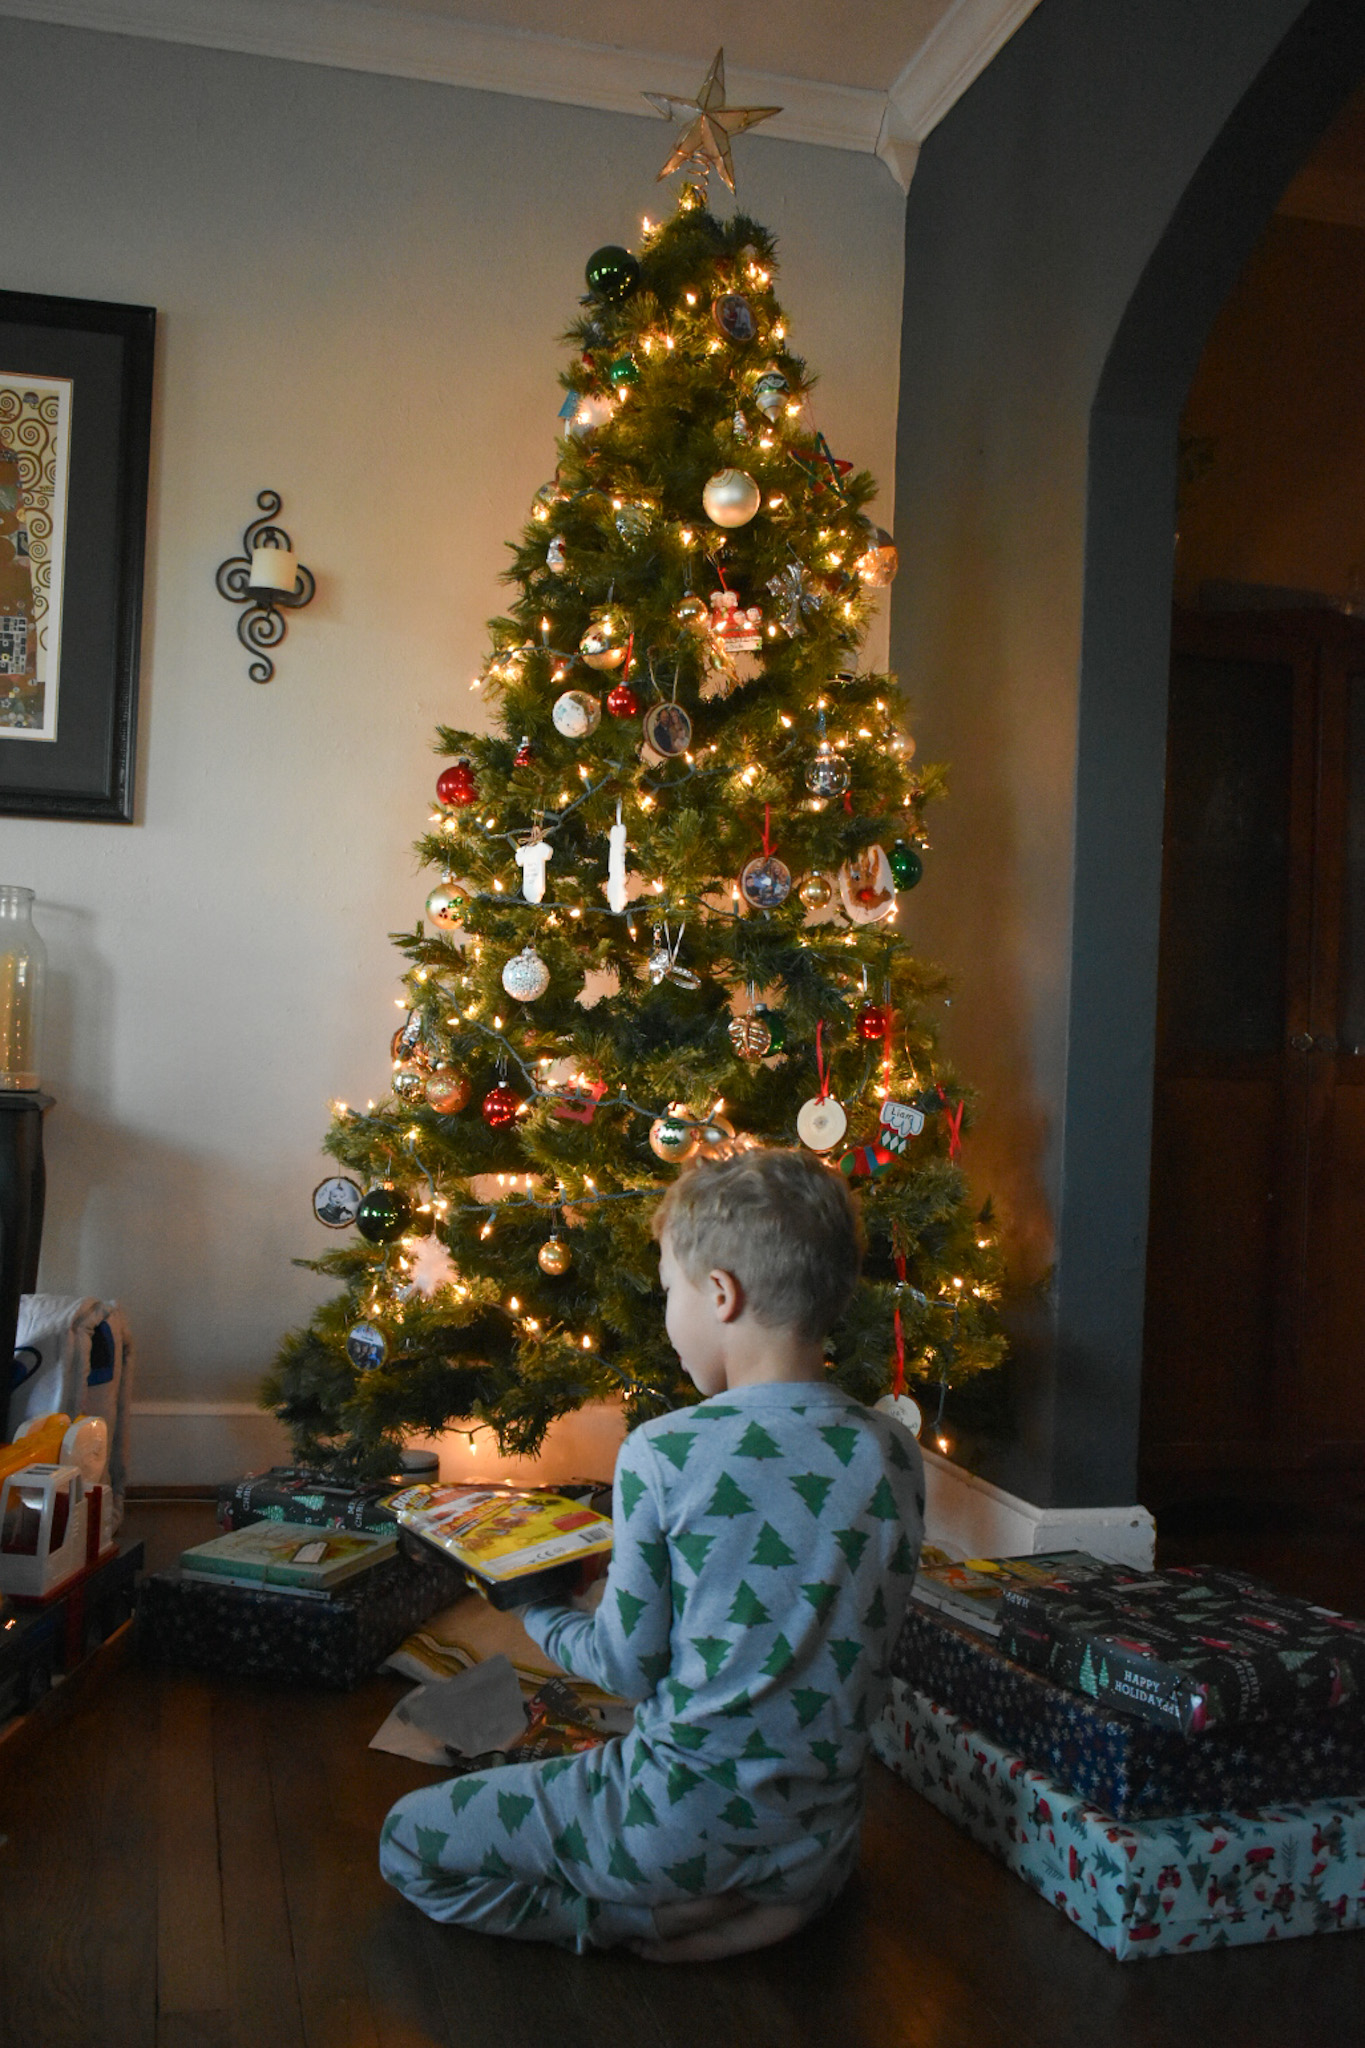 One little boy opening up presents by the family tree